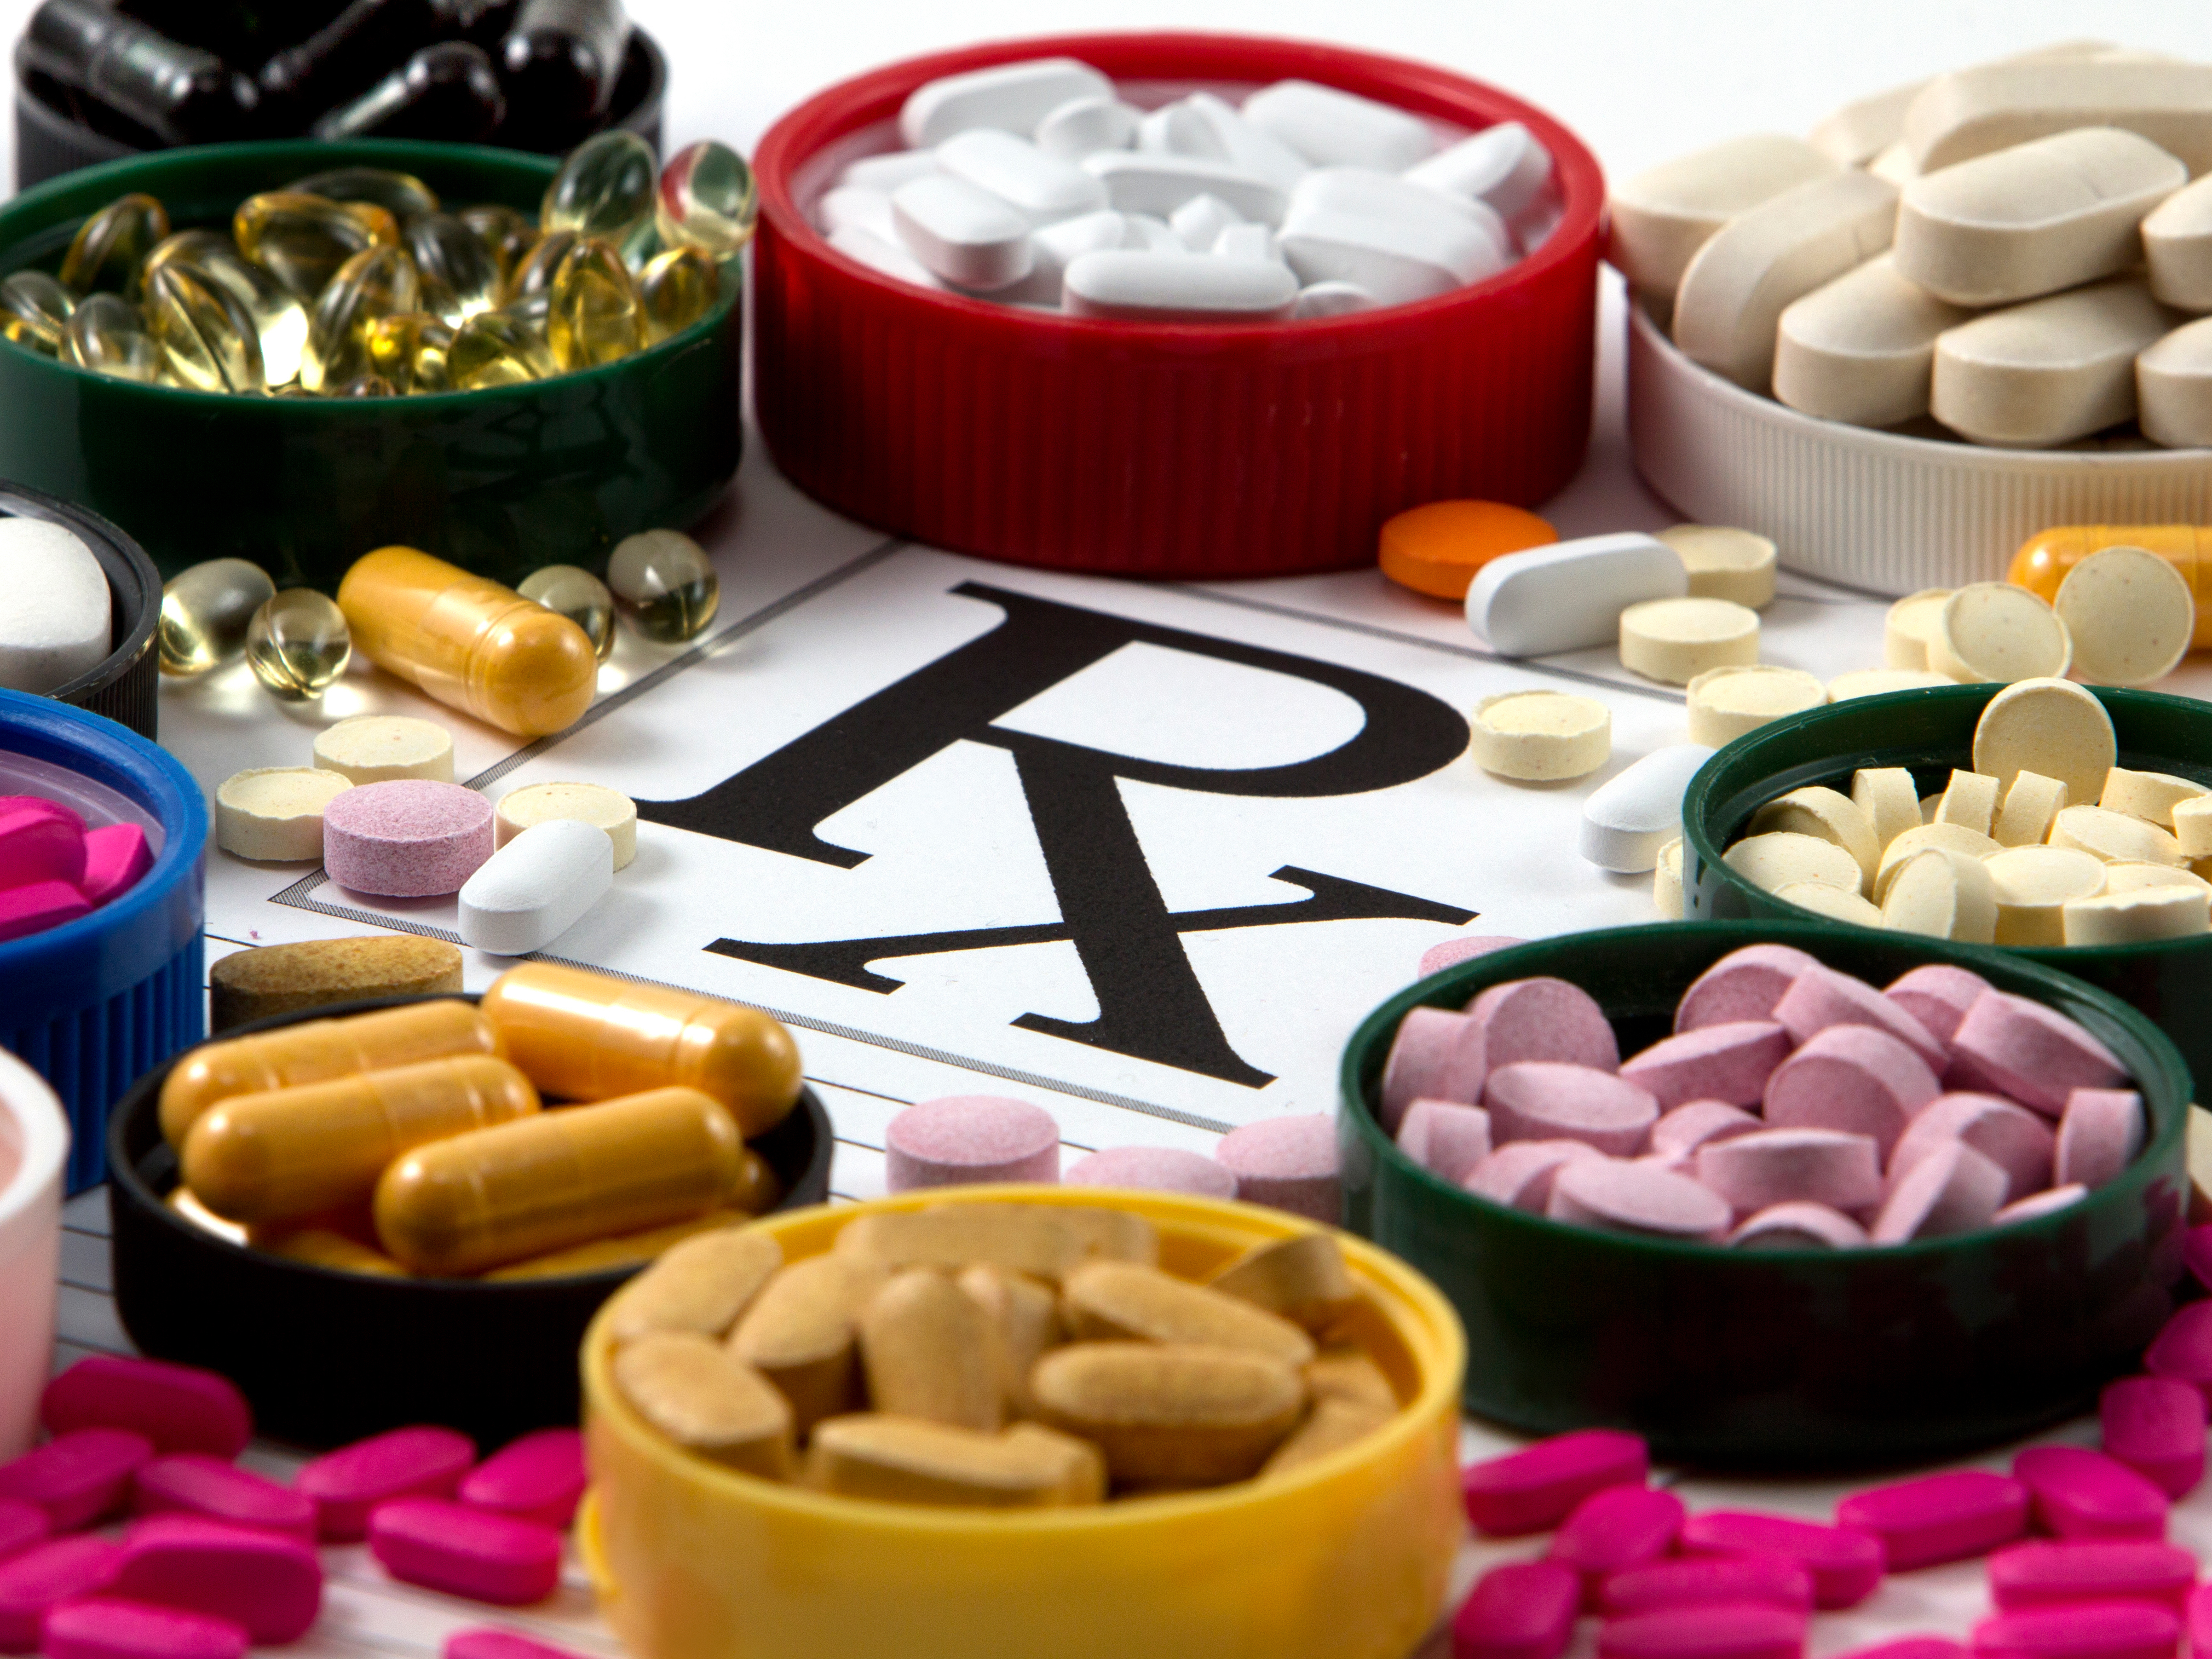 how to get rid of prescription drugs safely